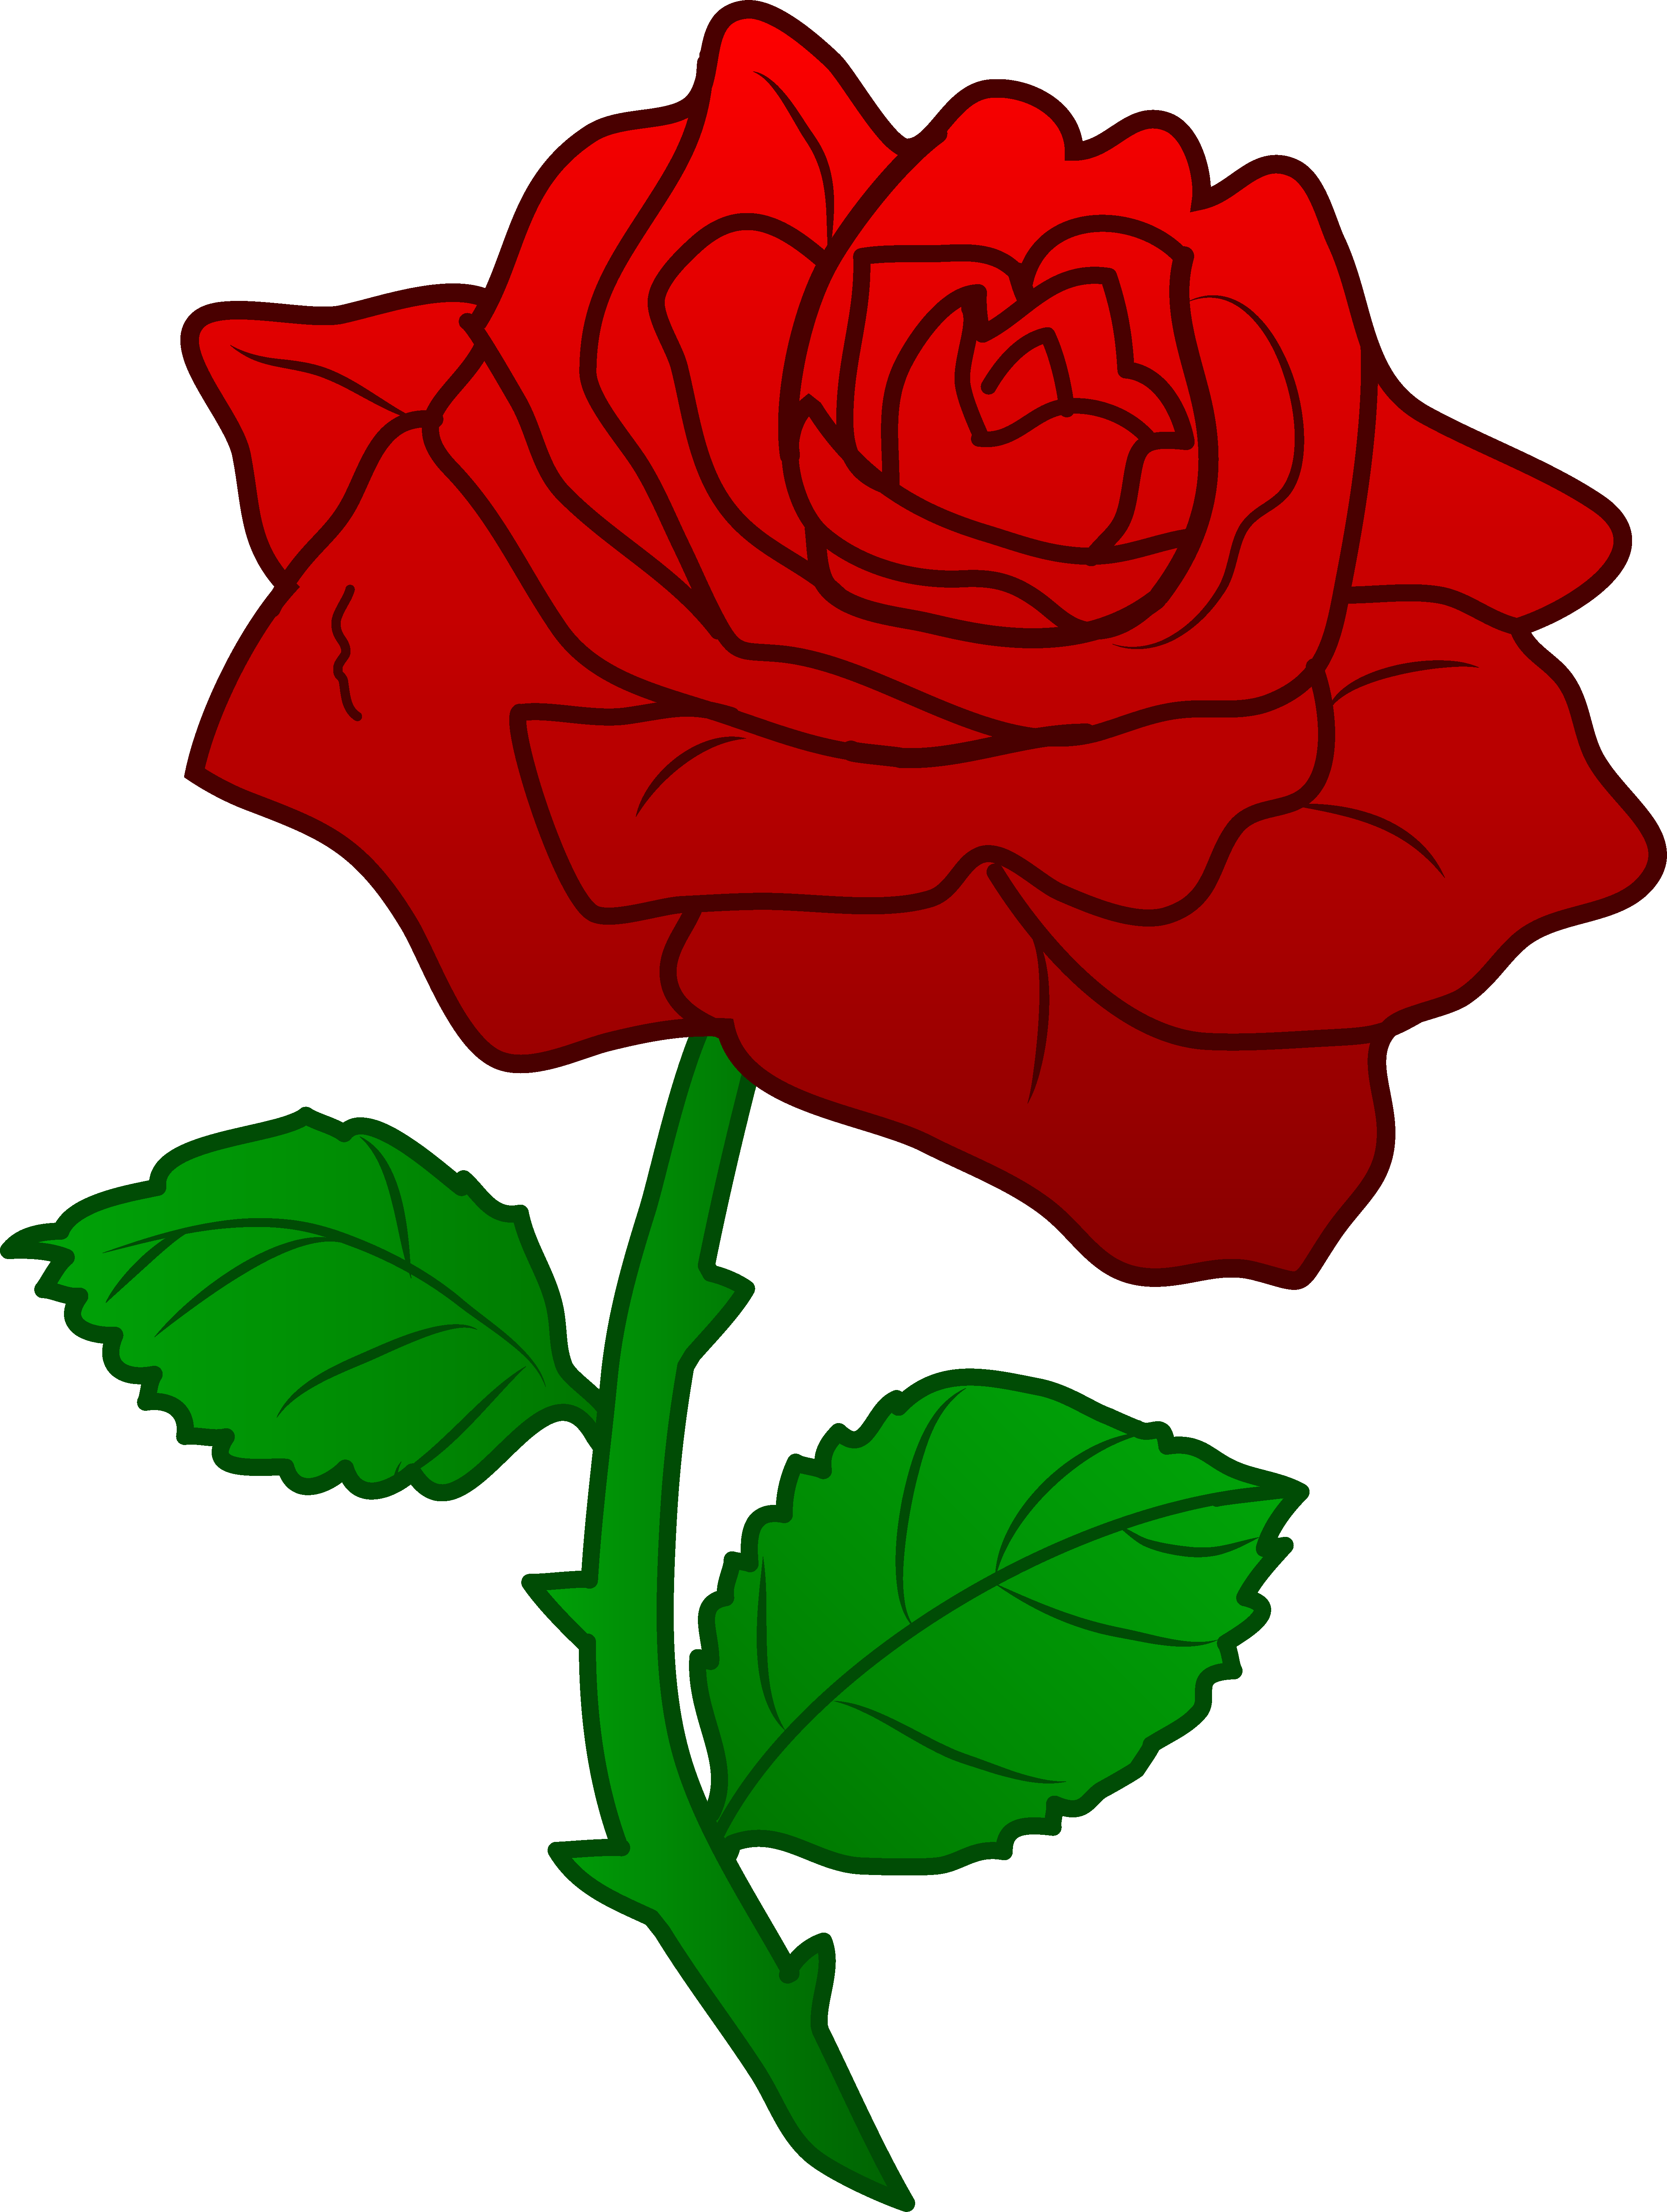 Clipart Rose-clipart rose-3